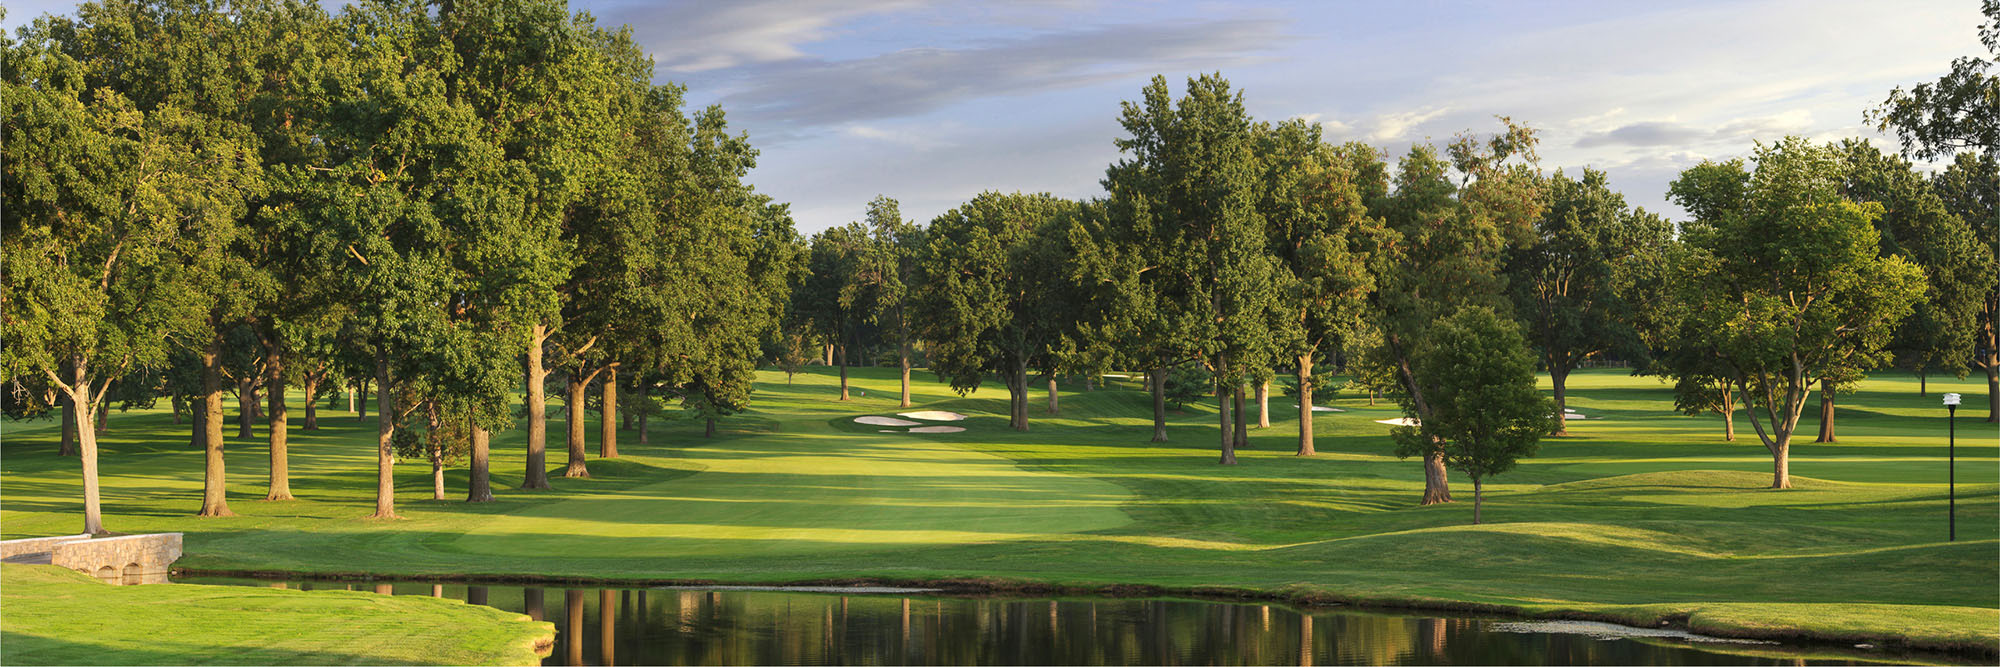 Golf Course Image - Indian Hills No. 8